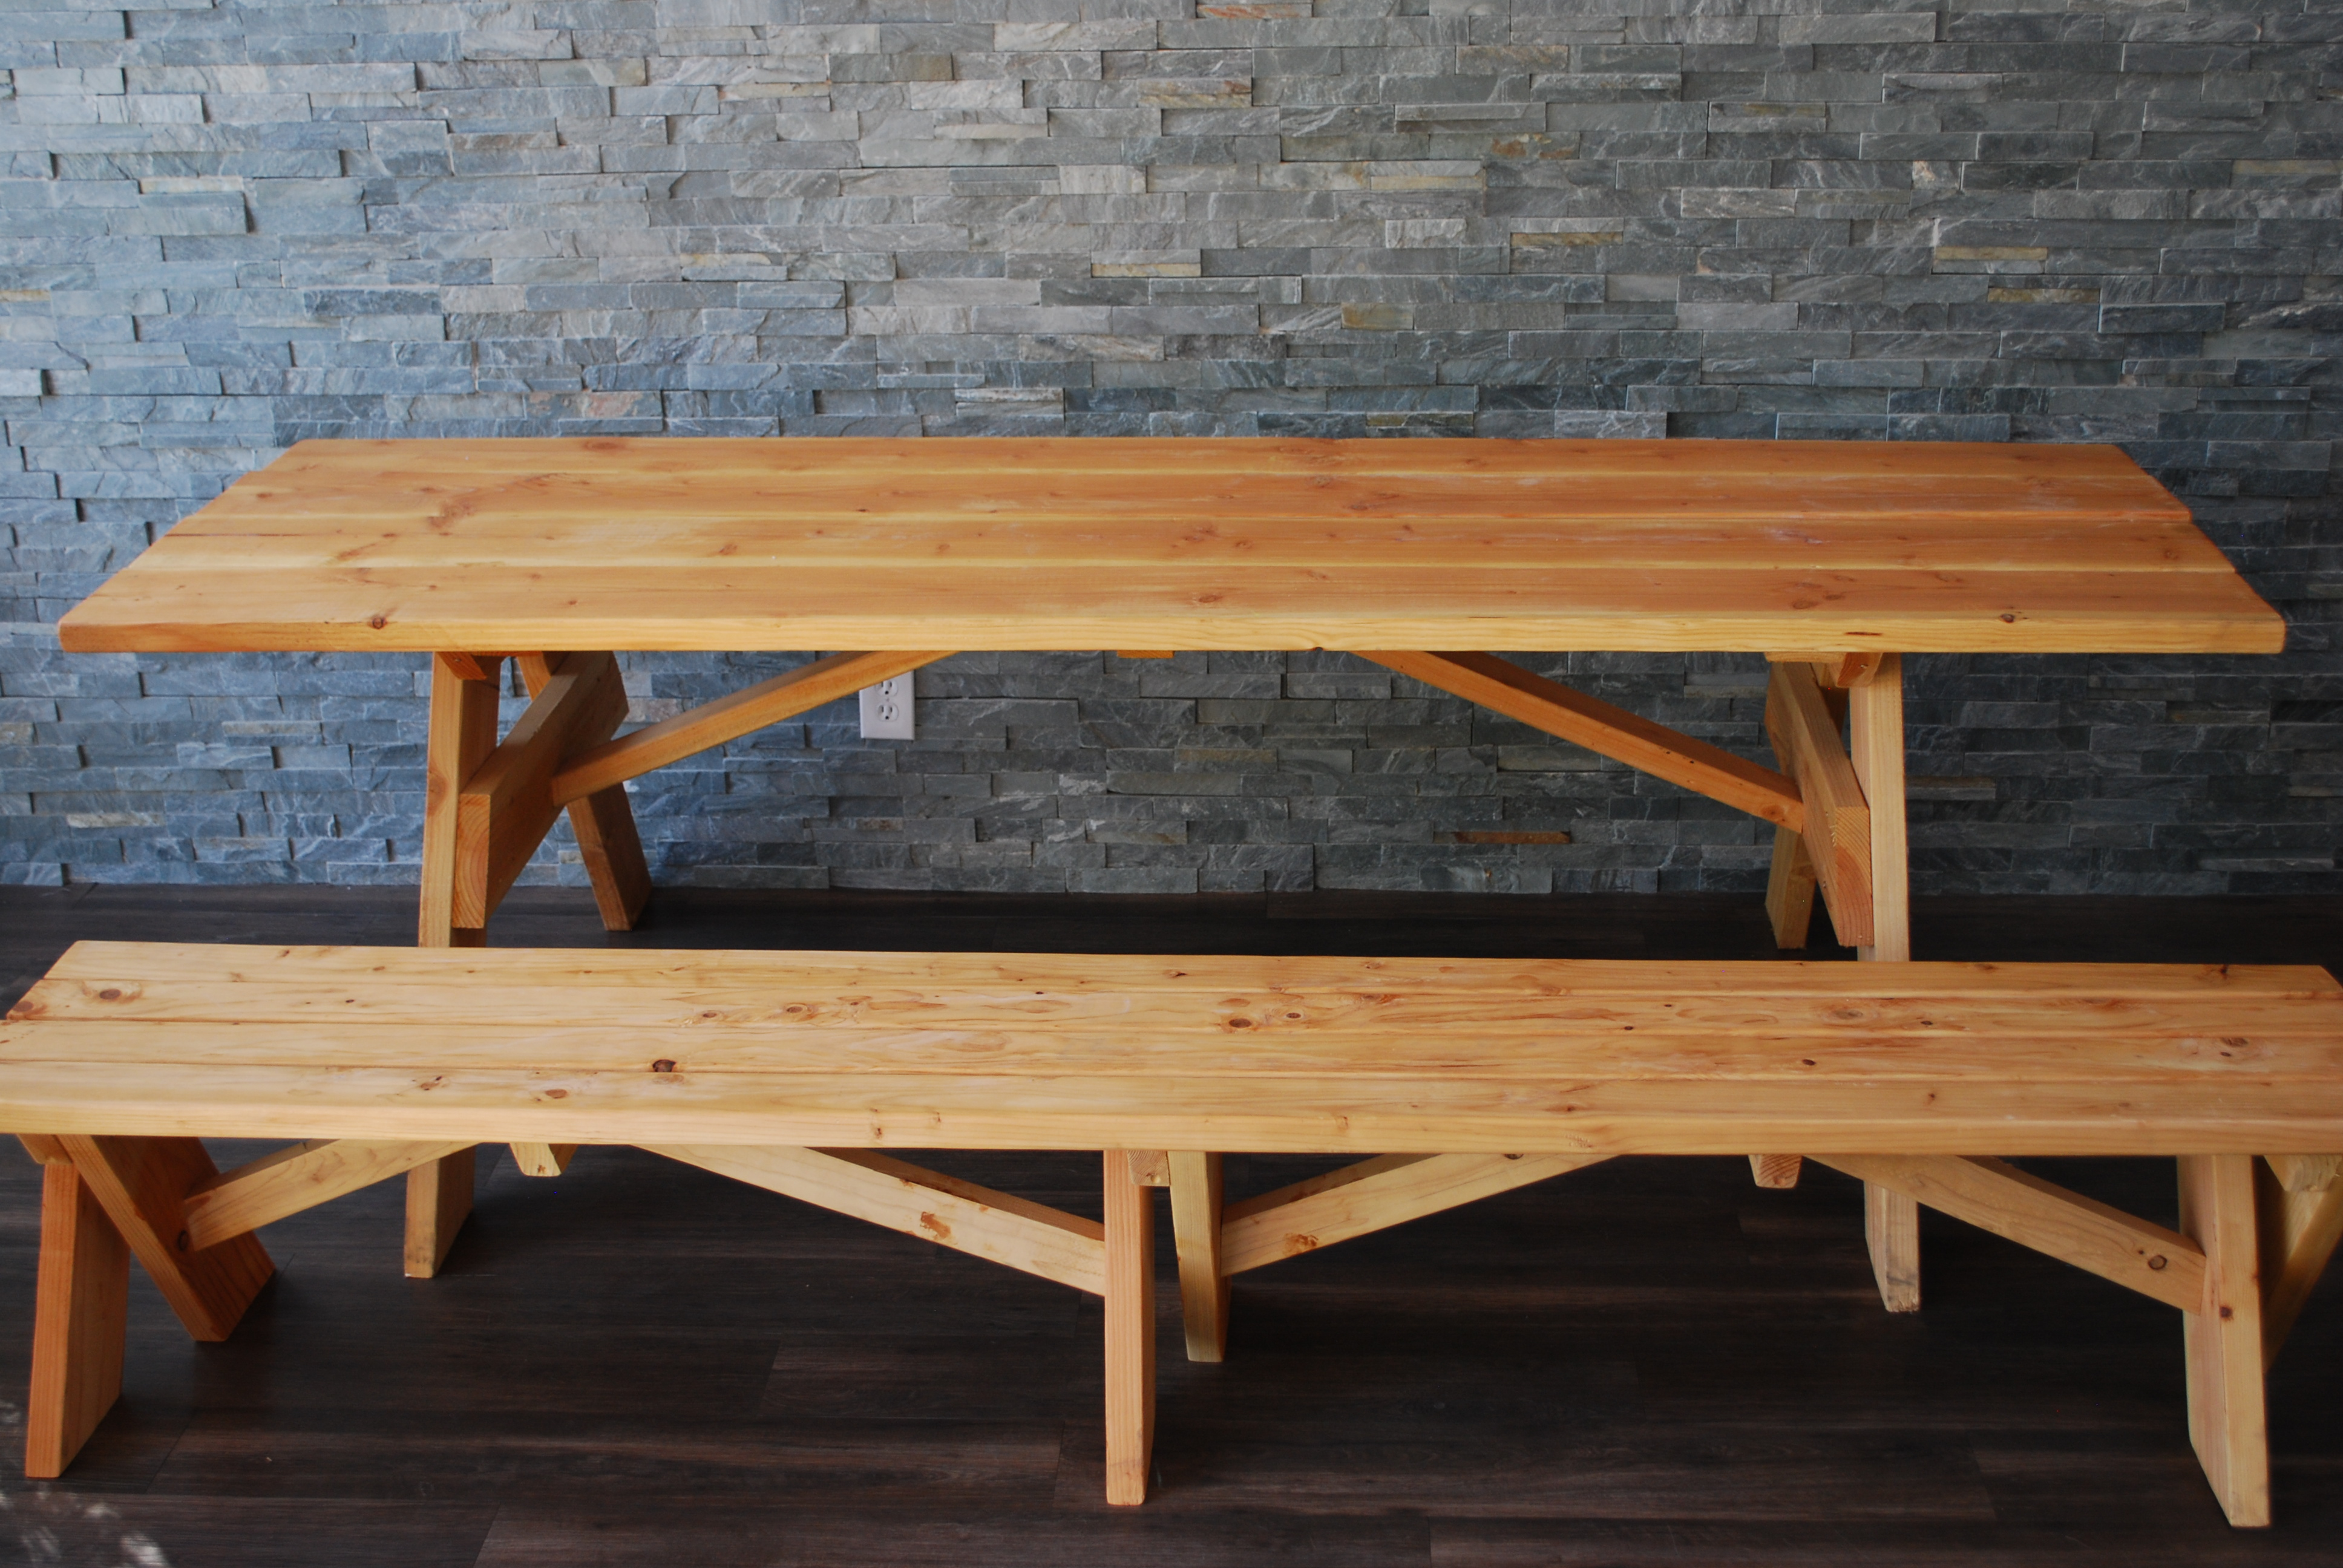 natural wood picnic table u0026 two benches - Wood Picnic Table